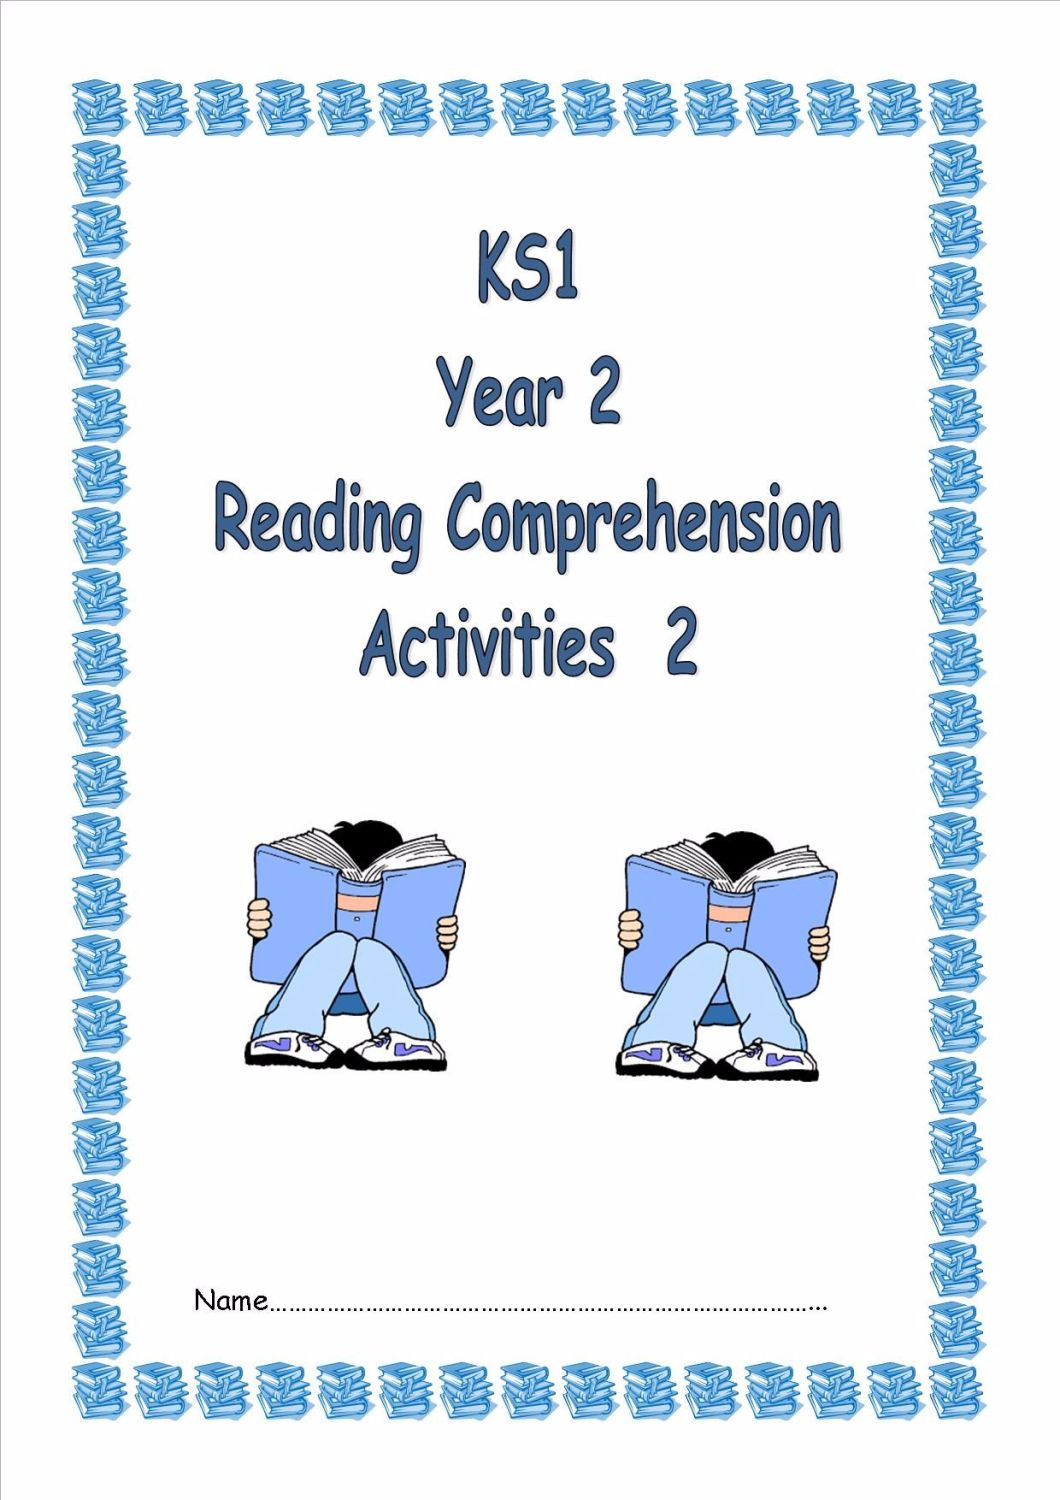 KS1, Year 2 Reading Comprehension Booklet